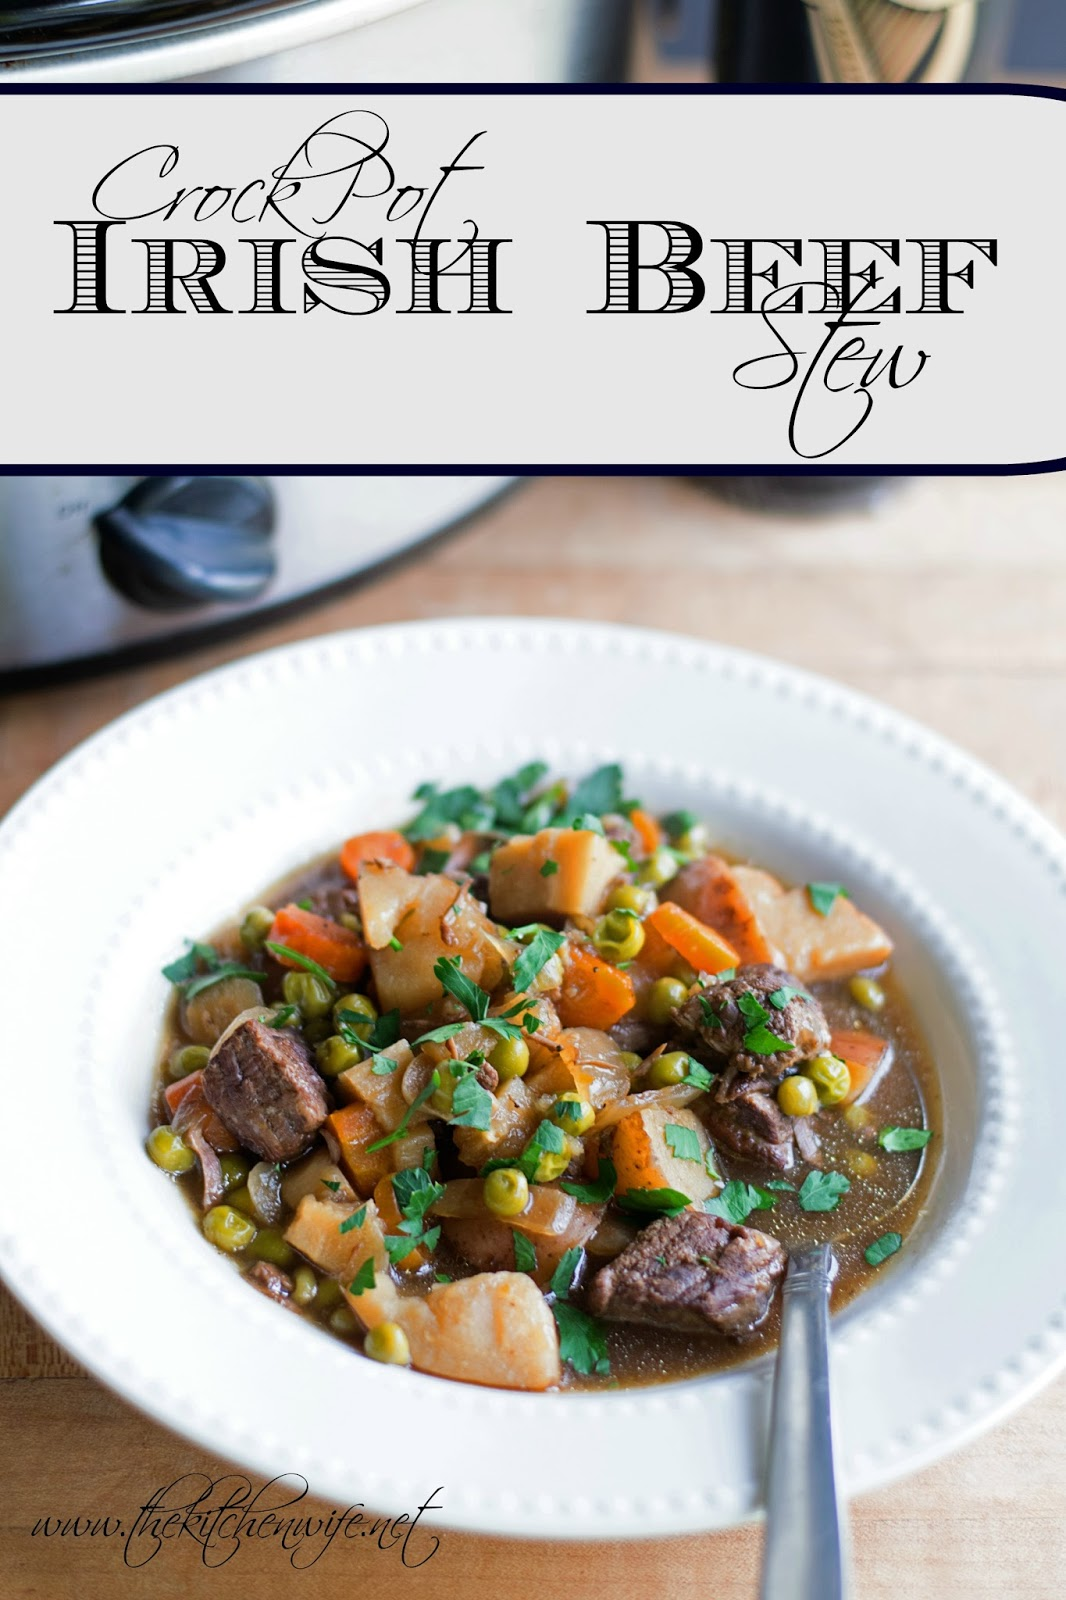 A Bowl Of The Finished Crock Pot Irish Beef Stew With The Title Above It